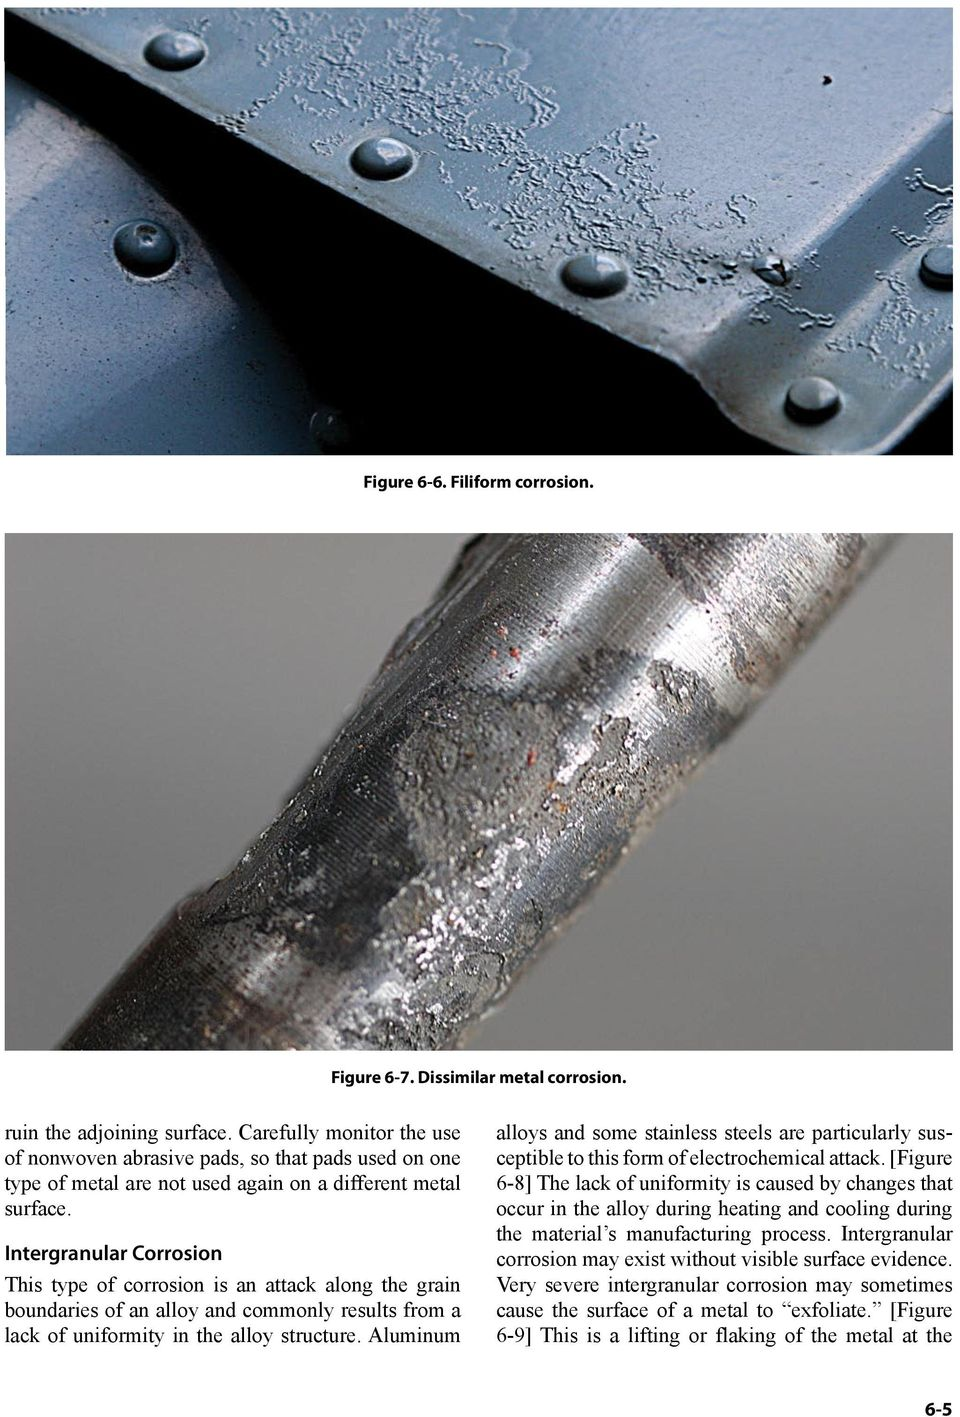 Intergranular Corrosion This type of corrosion is an attack along the grain boundaries of an alloy and commonly results from a lack of uniformity in the alloy structure.